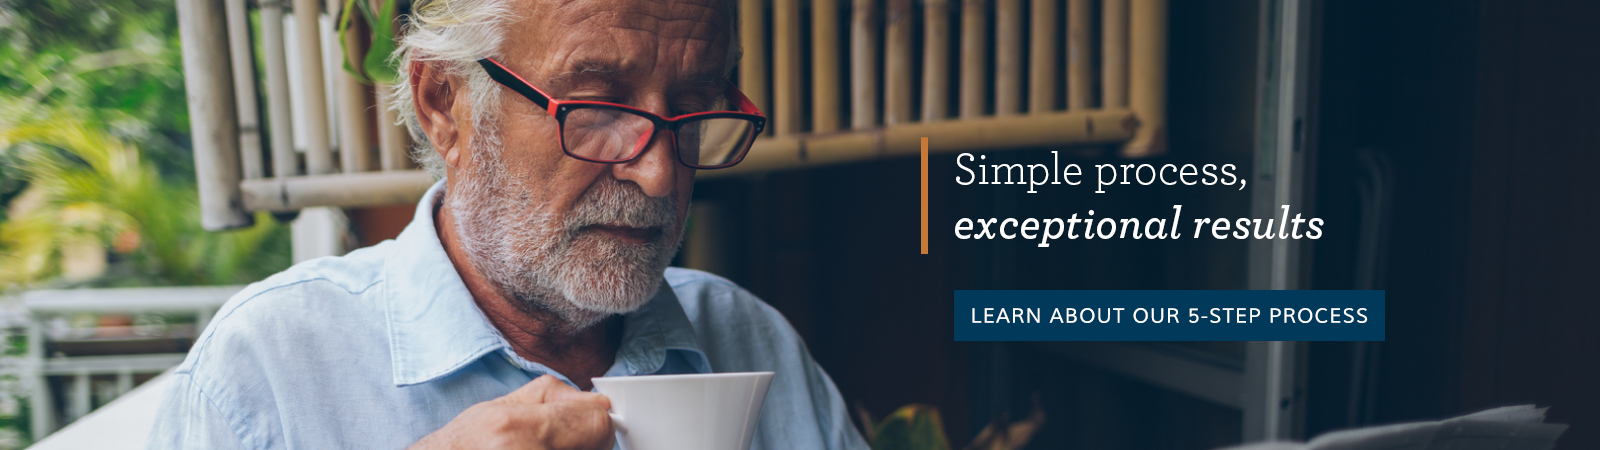 simple process exceptional results